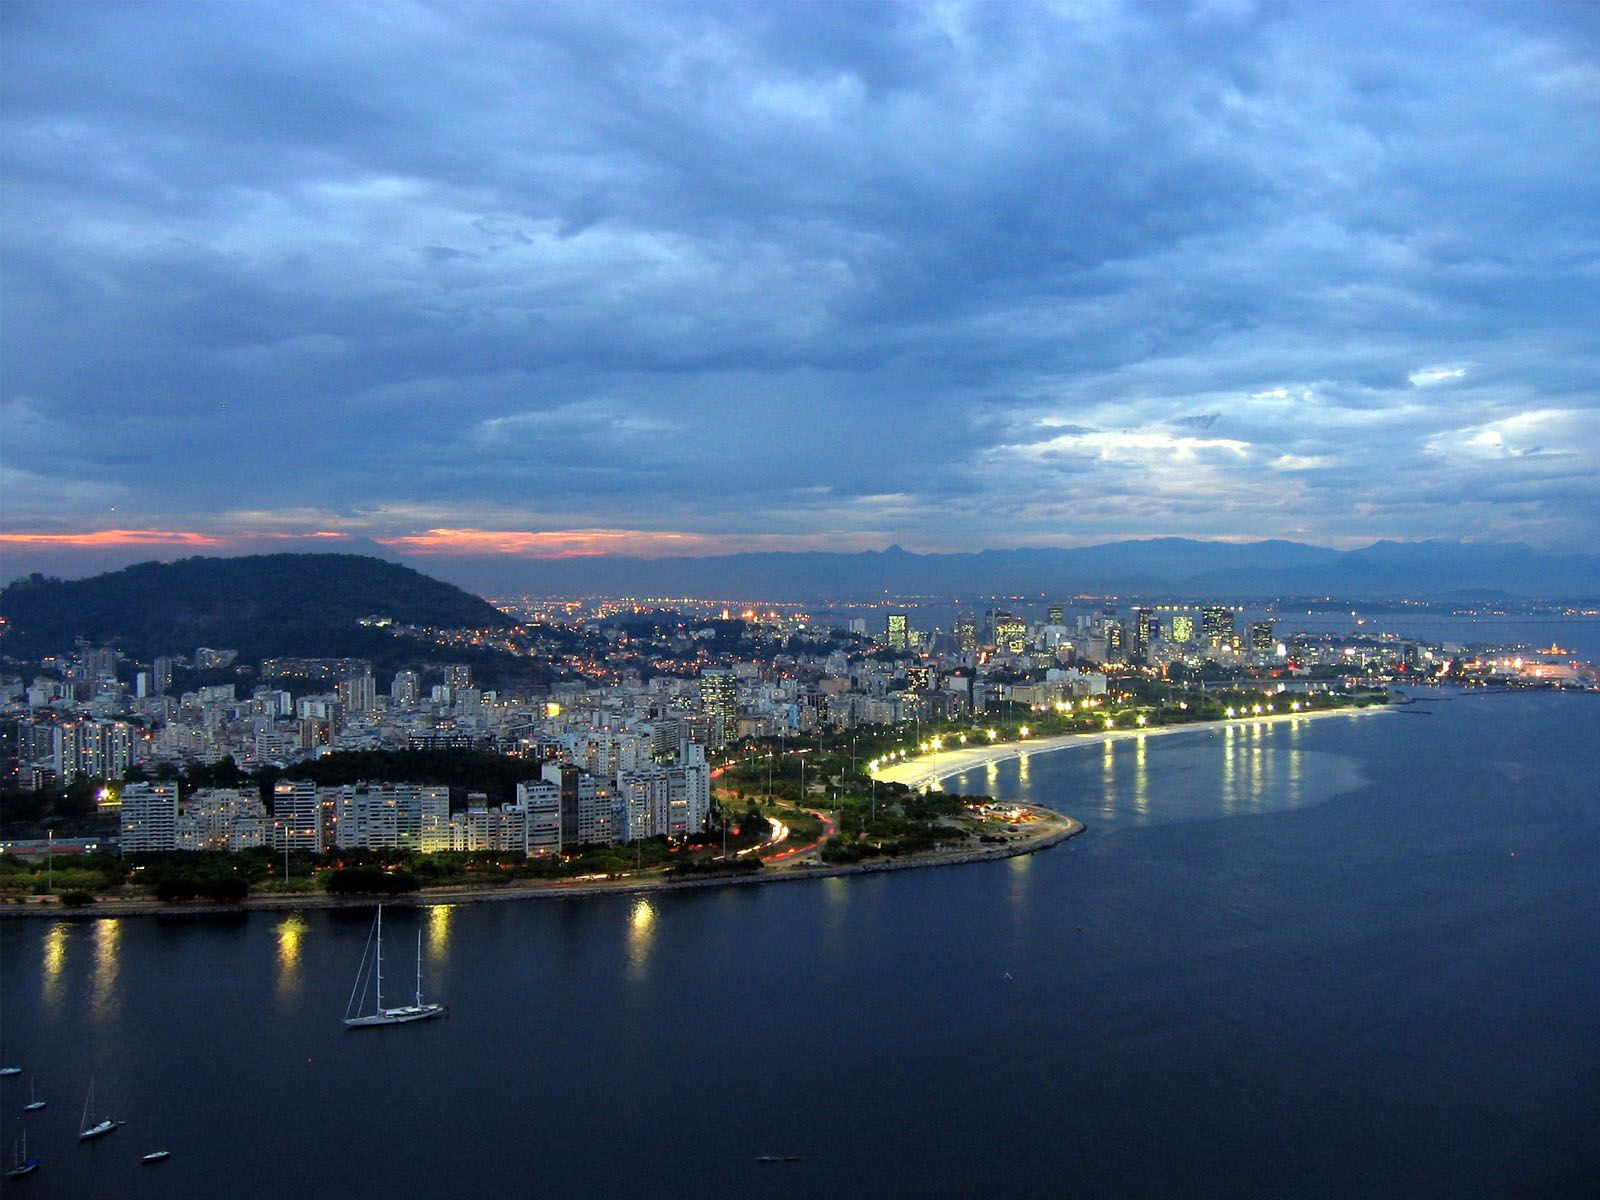 brazil rio de janeiro evening pic Top 10 Cheapest Countries to Live in